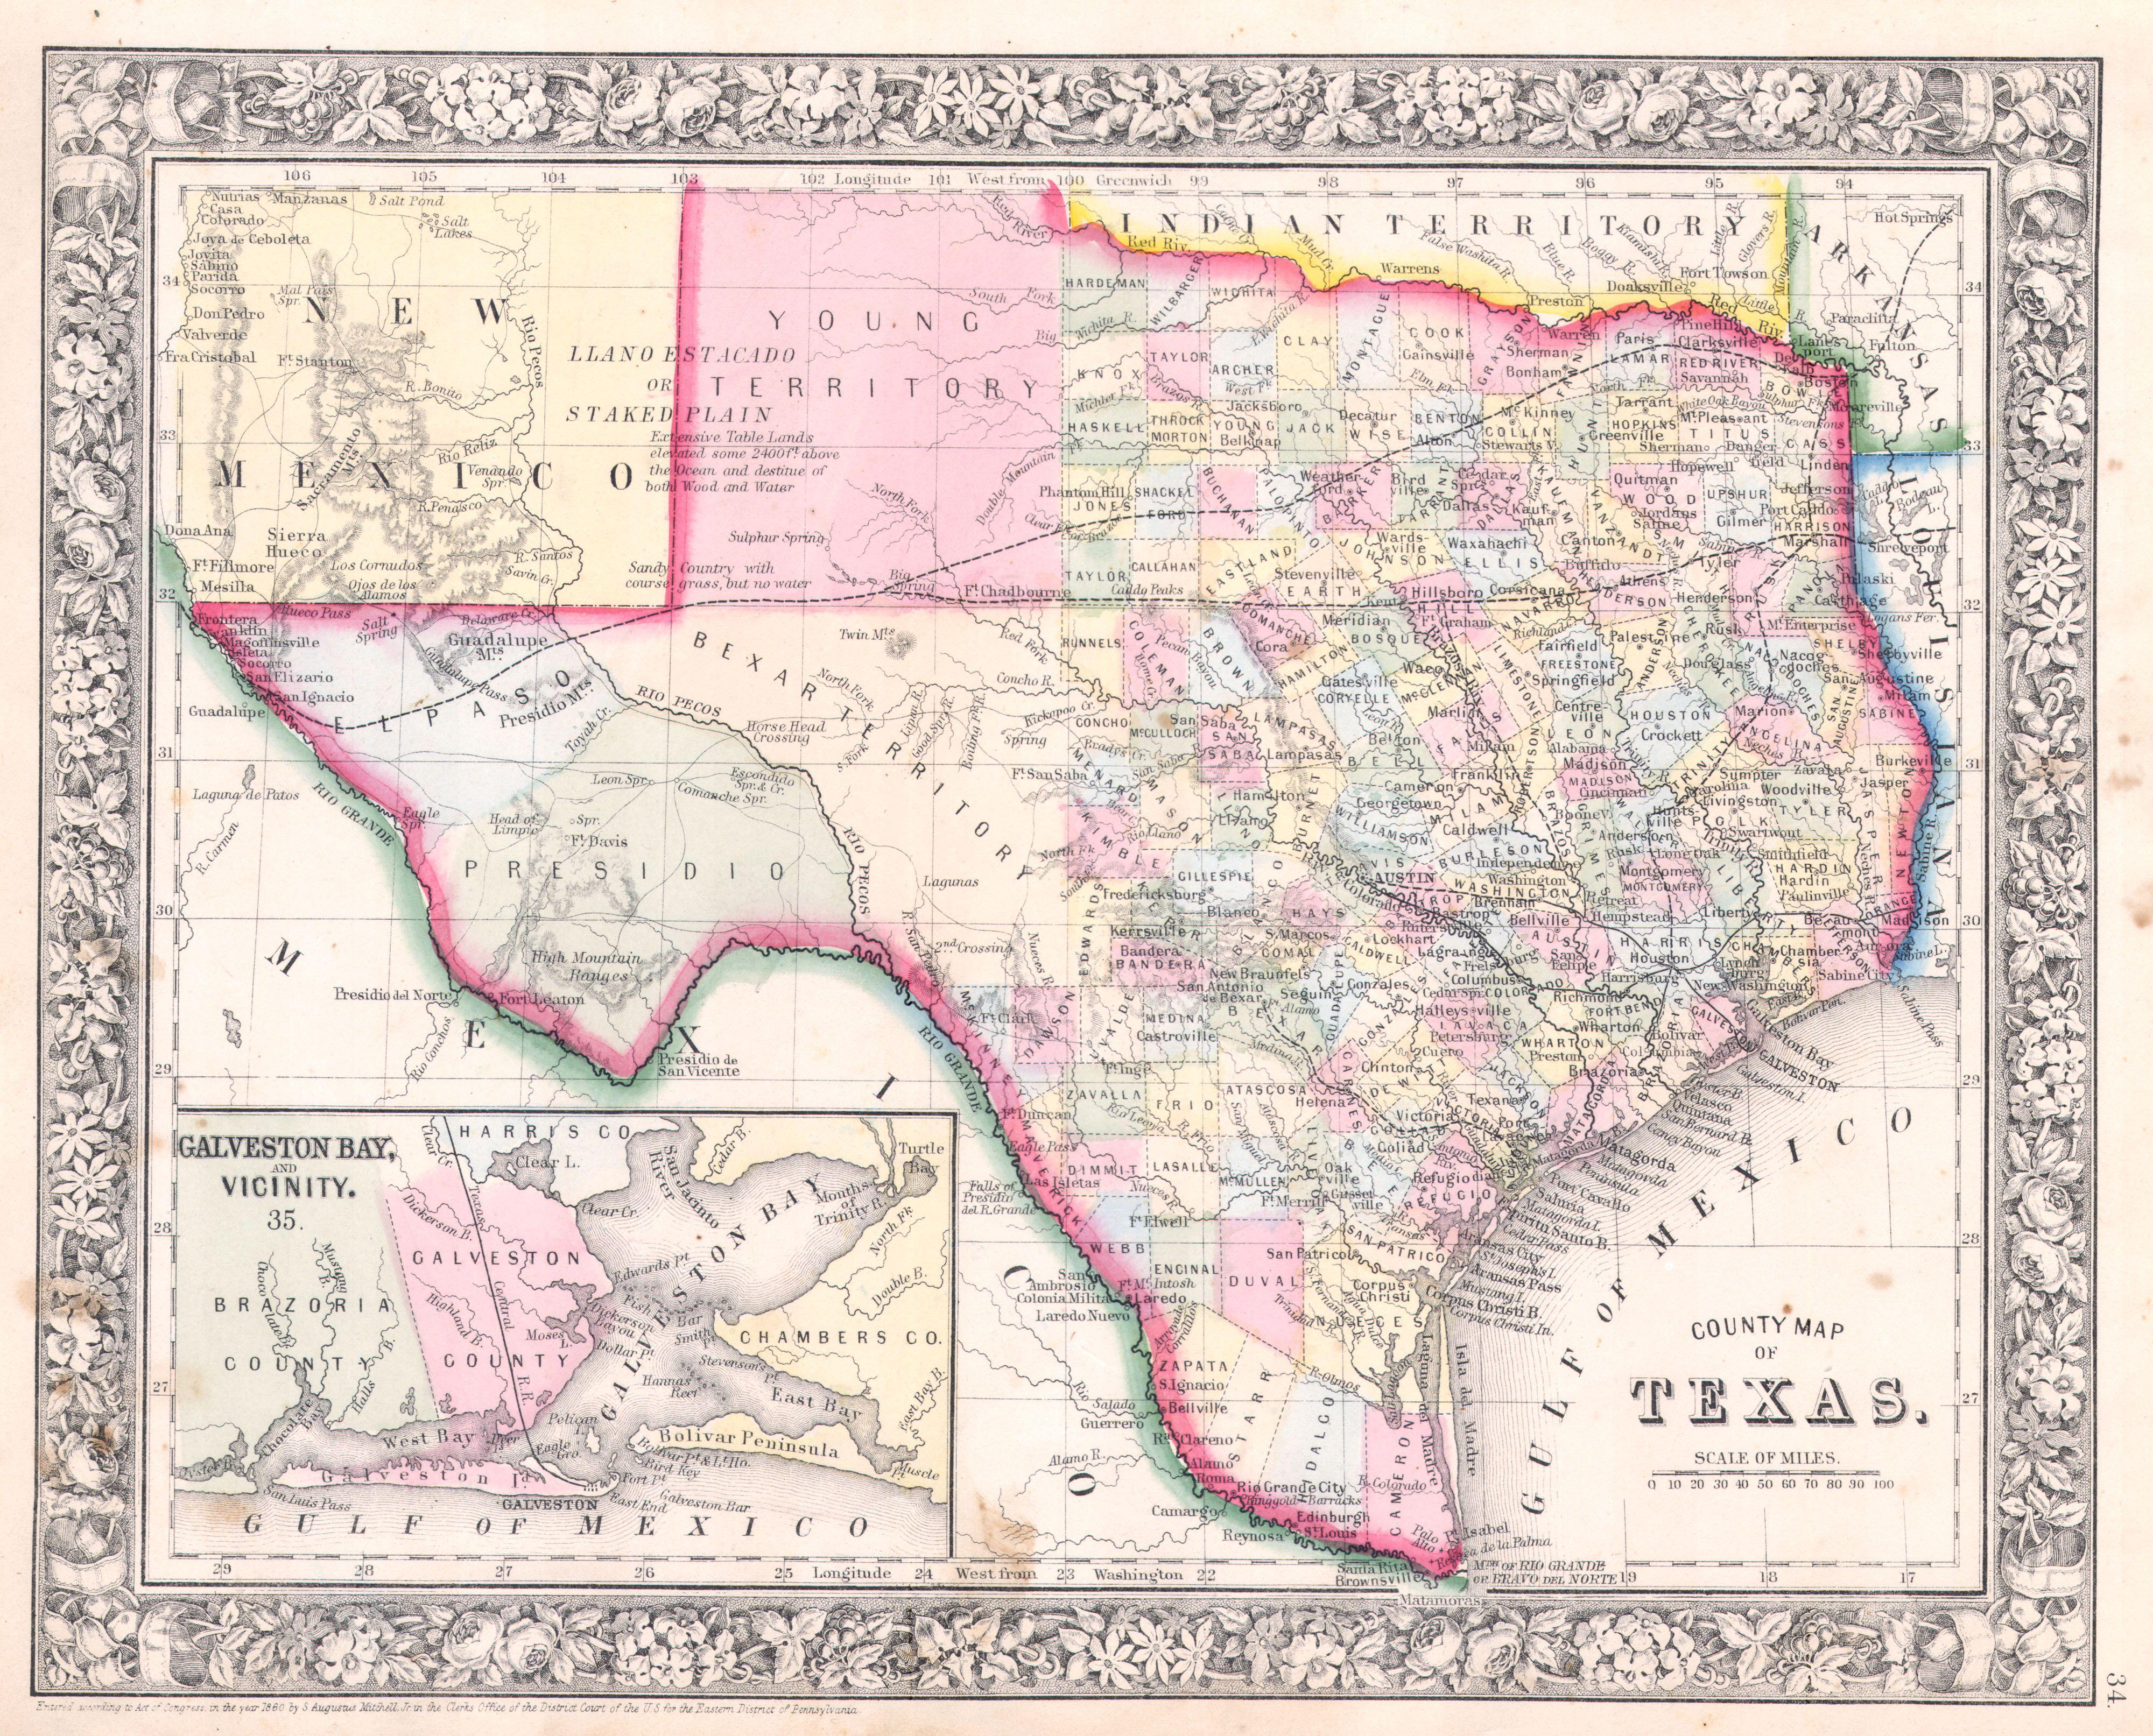 galveston county map with File 1864 Mitchell Map Of Texas   Geographicus   Tx Mitchell 1864 on Texas Map together with Index besides 2013 Metros Houston Tx together with 1816 Shouse Rd Santa Fe TX 77510 M82715 01735 further File 1864 Mitchell Map of Texas   Geographicus   TX Mitchell 1864.